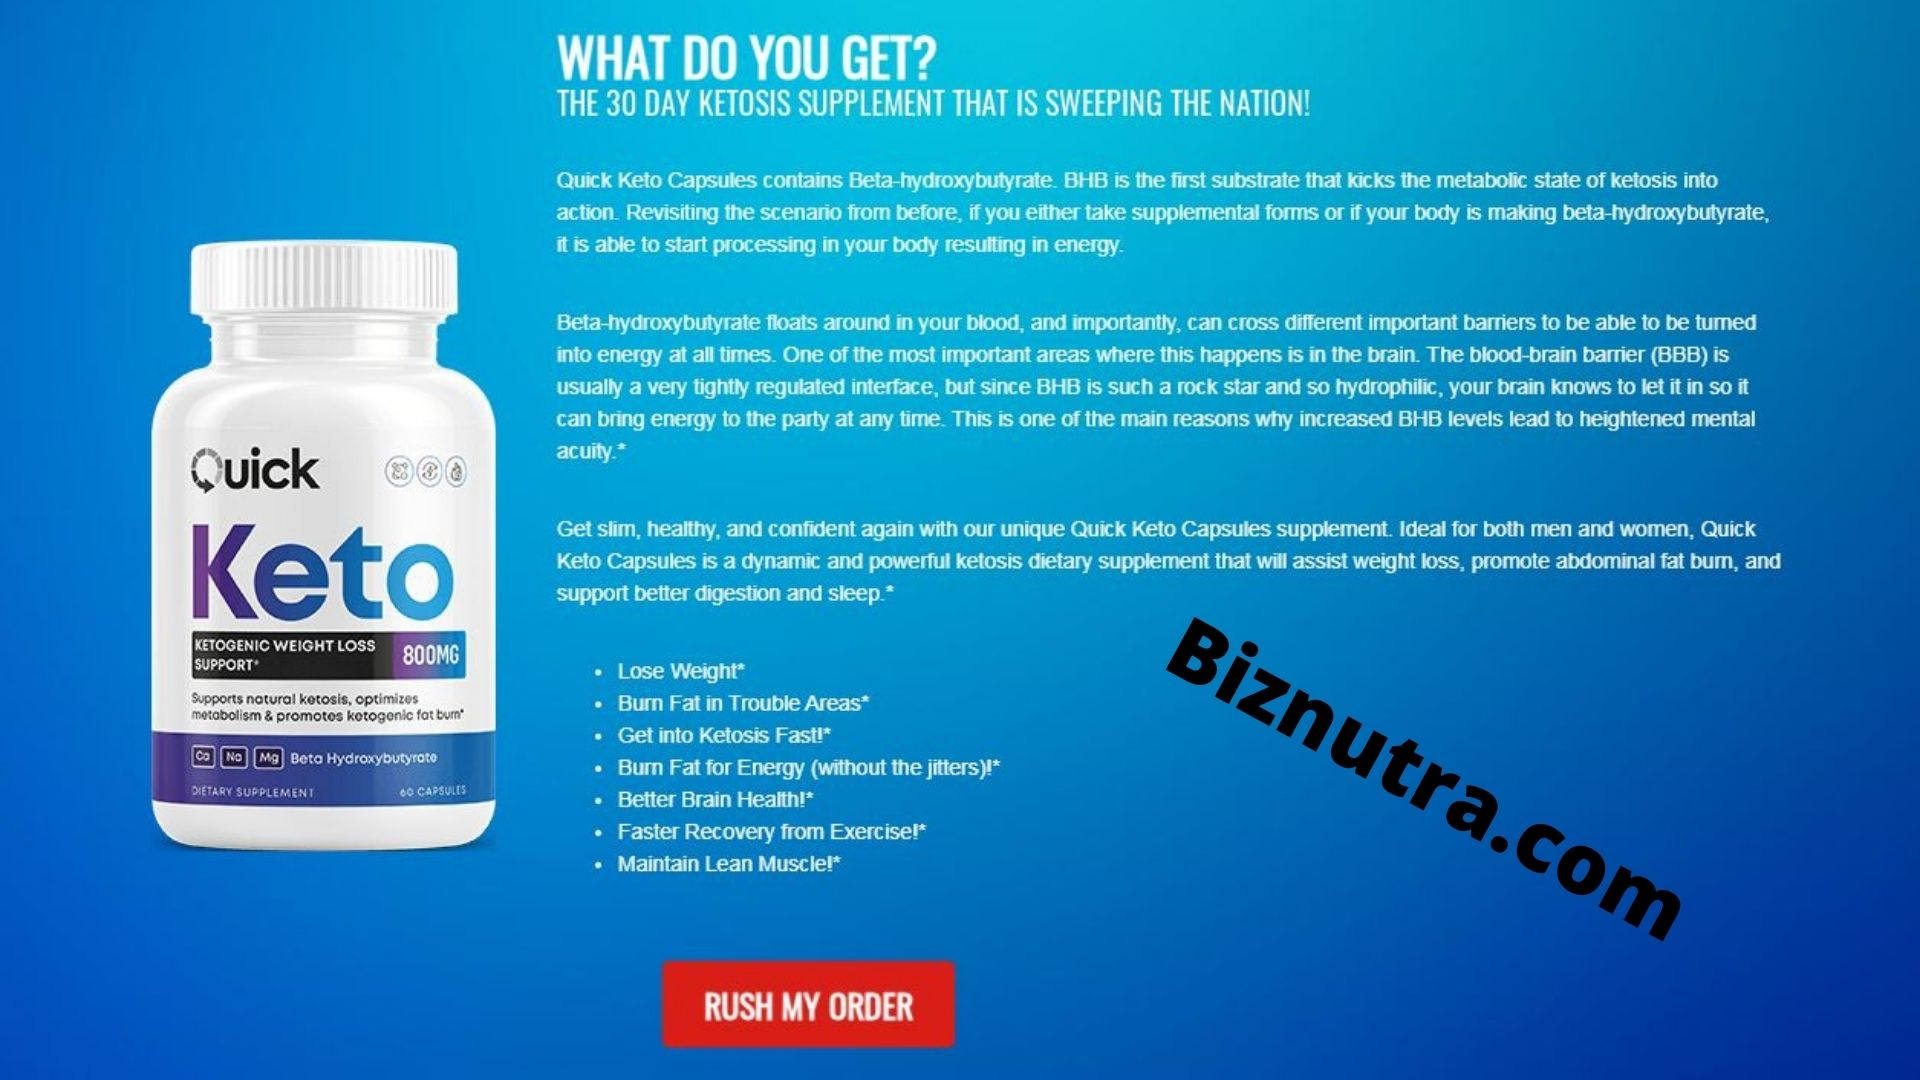 Quick Keto Fat Burn Pills [Review] Effective Ingredients 100% Natural!